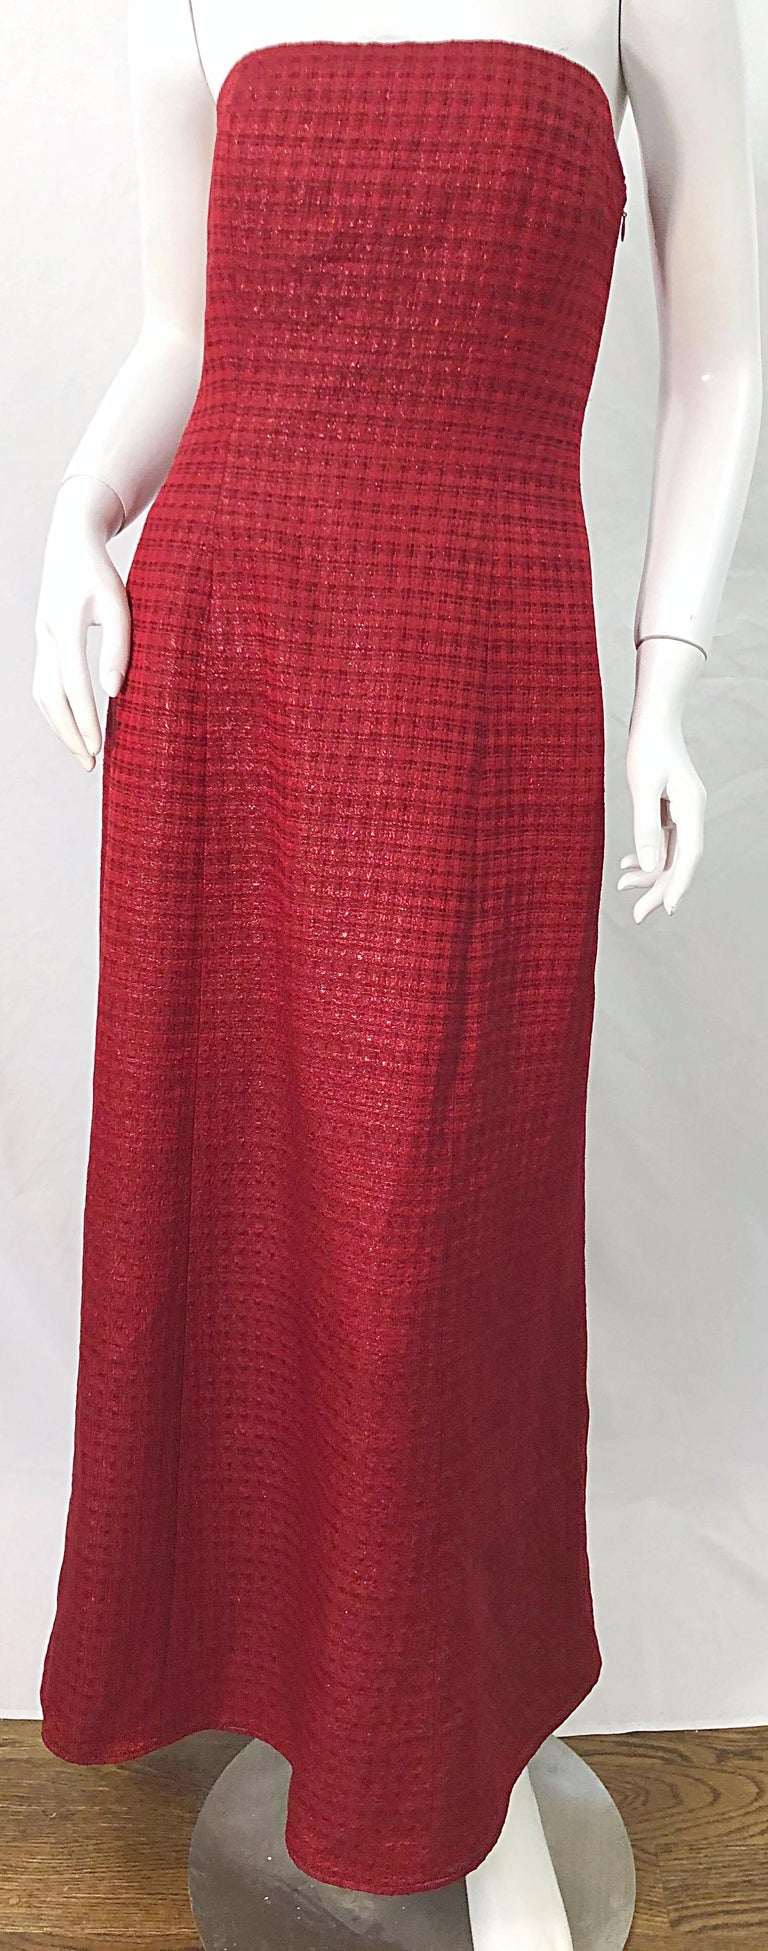 1990s Louis Feraud Cranberry Red Strapless Vintage 90s Silk + Wool Gown Dress For Sale 3